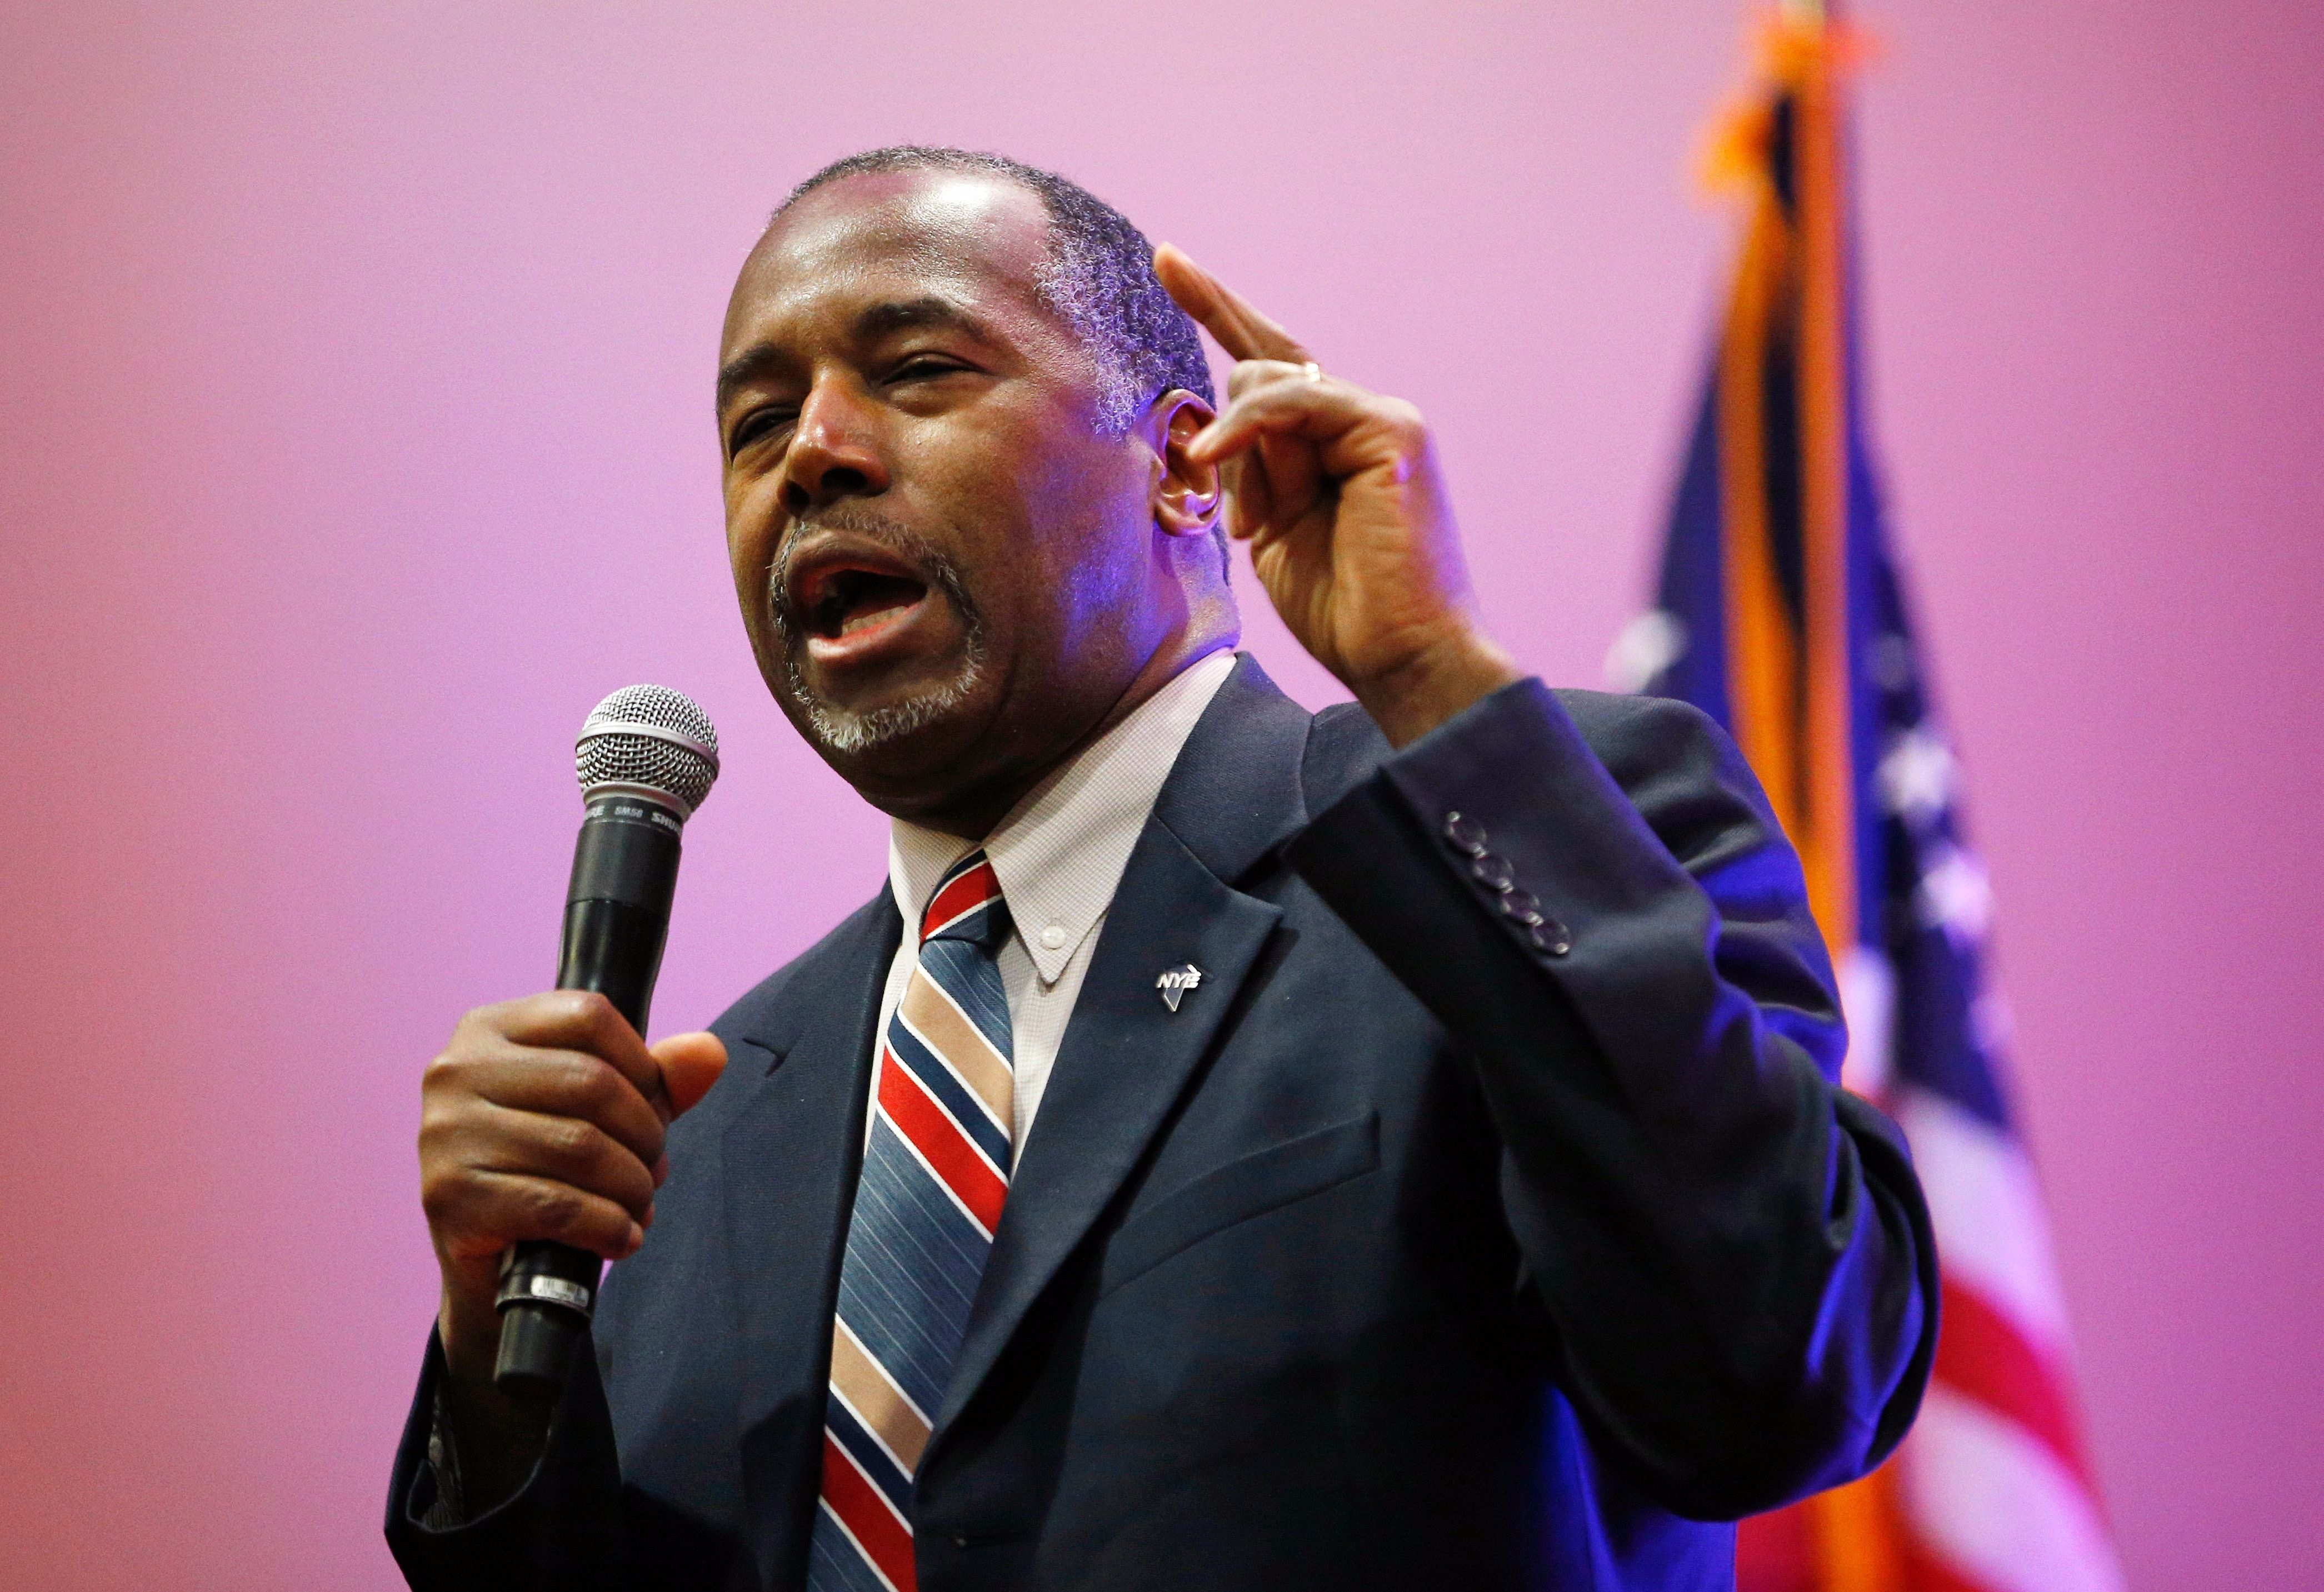 Here's the prescription that Ben Carson needs to write for